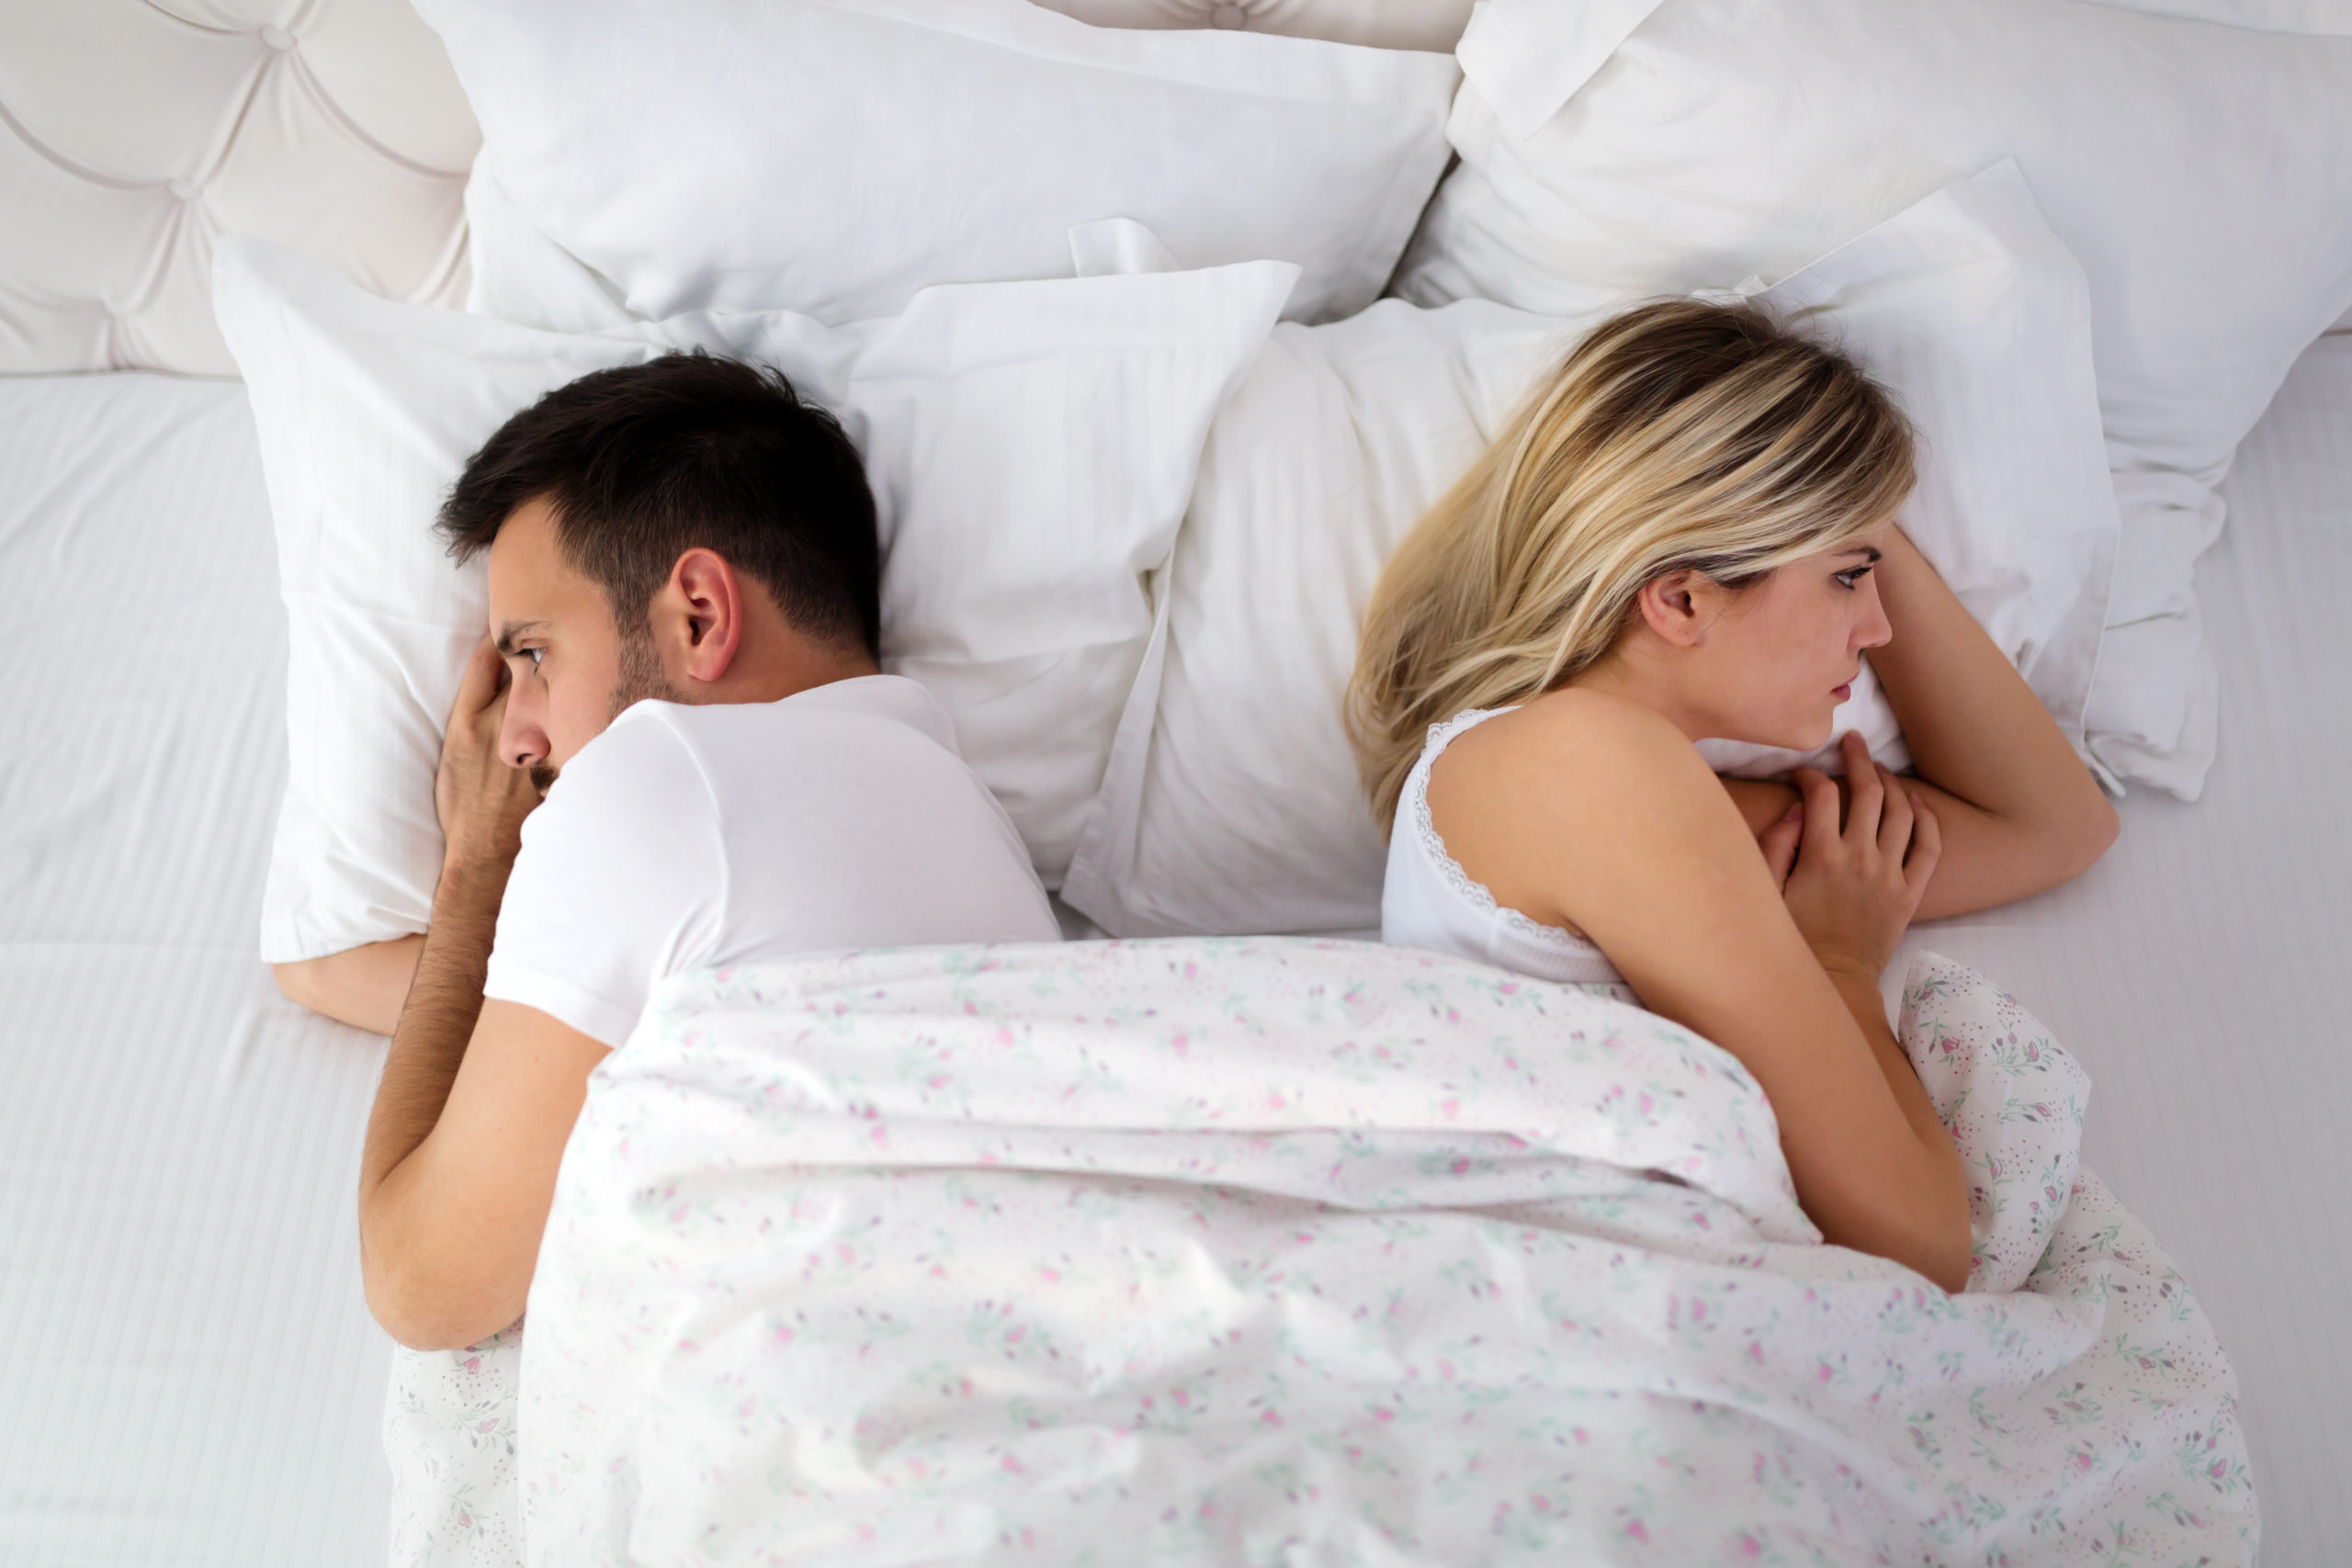 The Truth About Breakup Sex